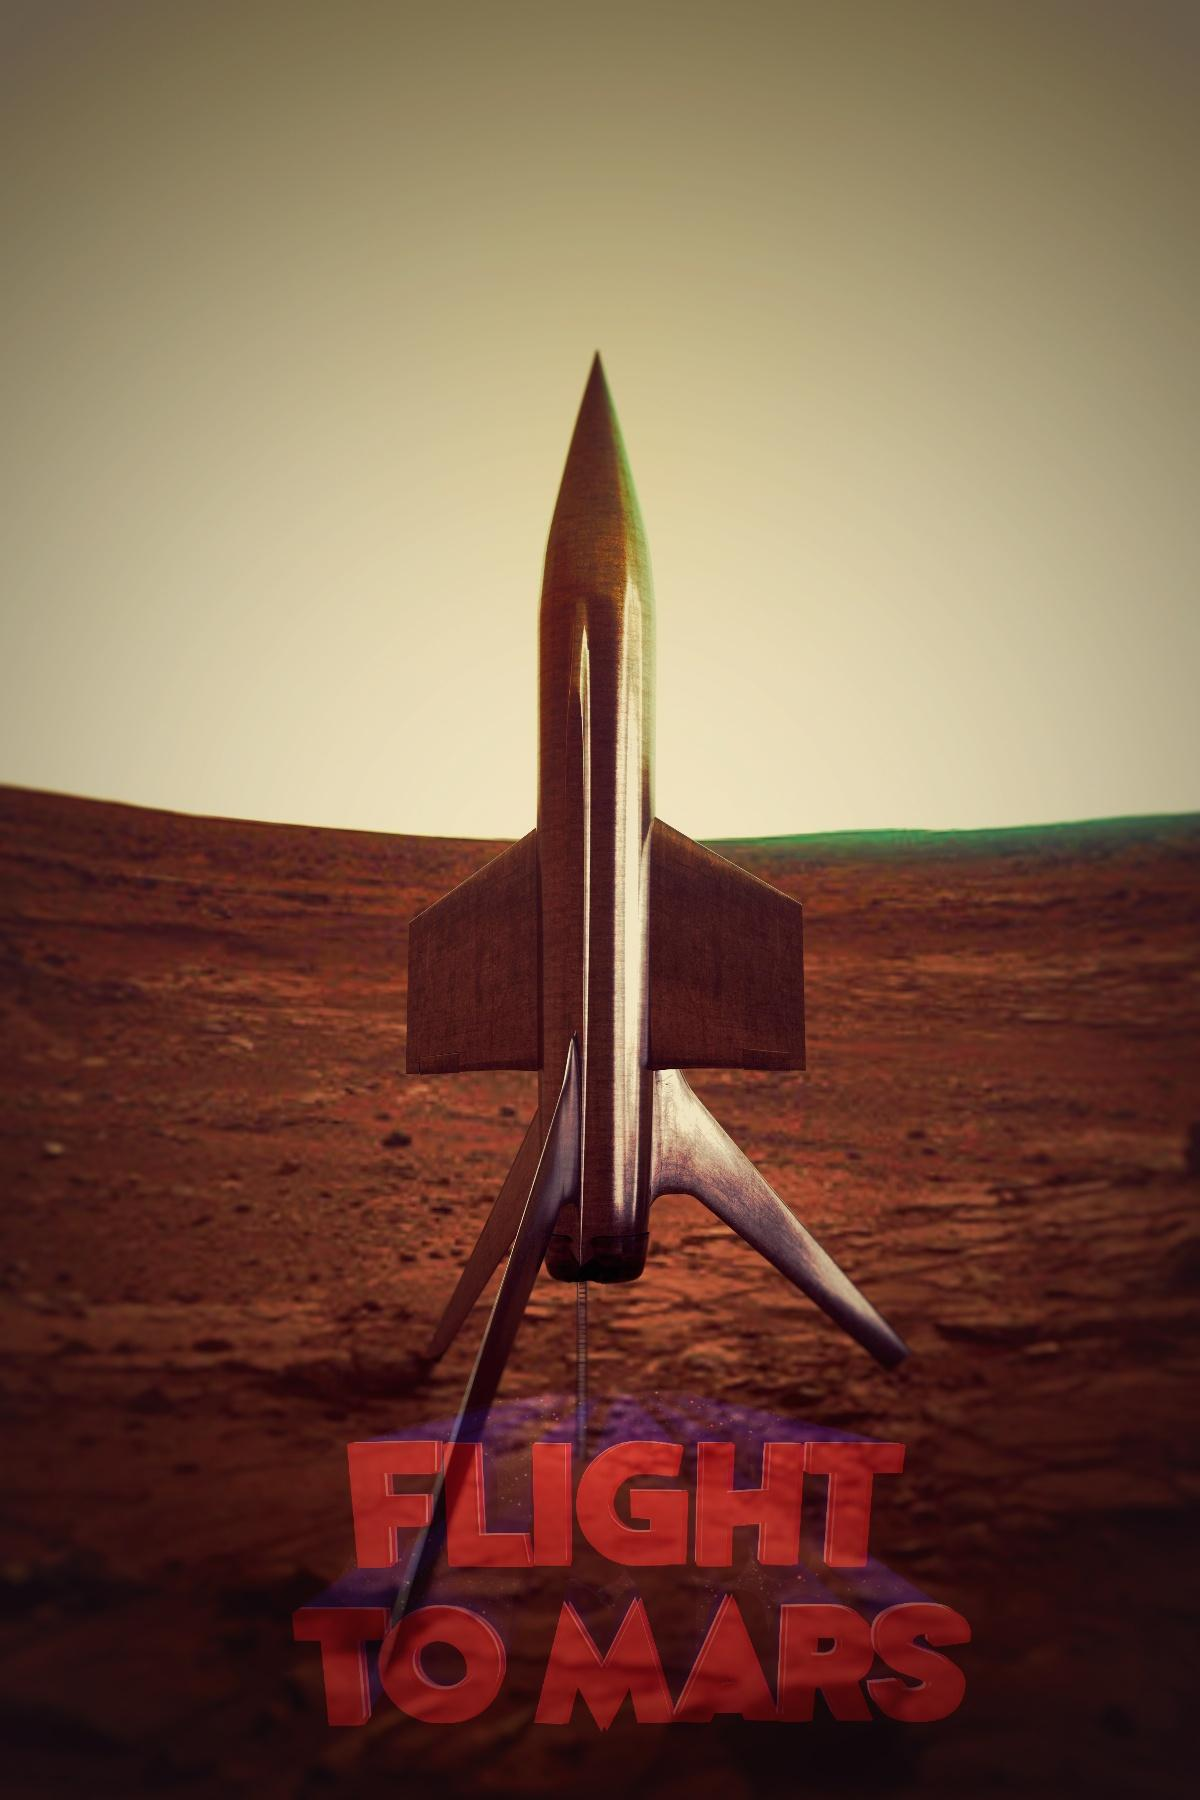 Flight to Mars - Rocket v3 compositing - Pacific Day - Render02_edited2.jpeg